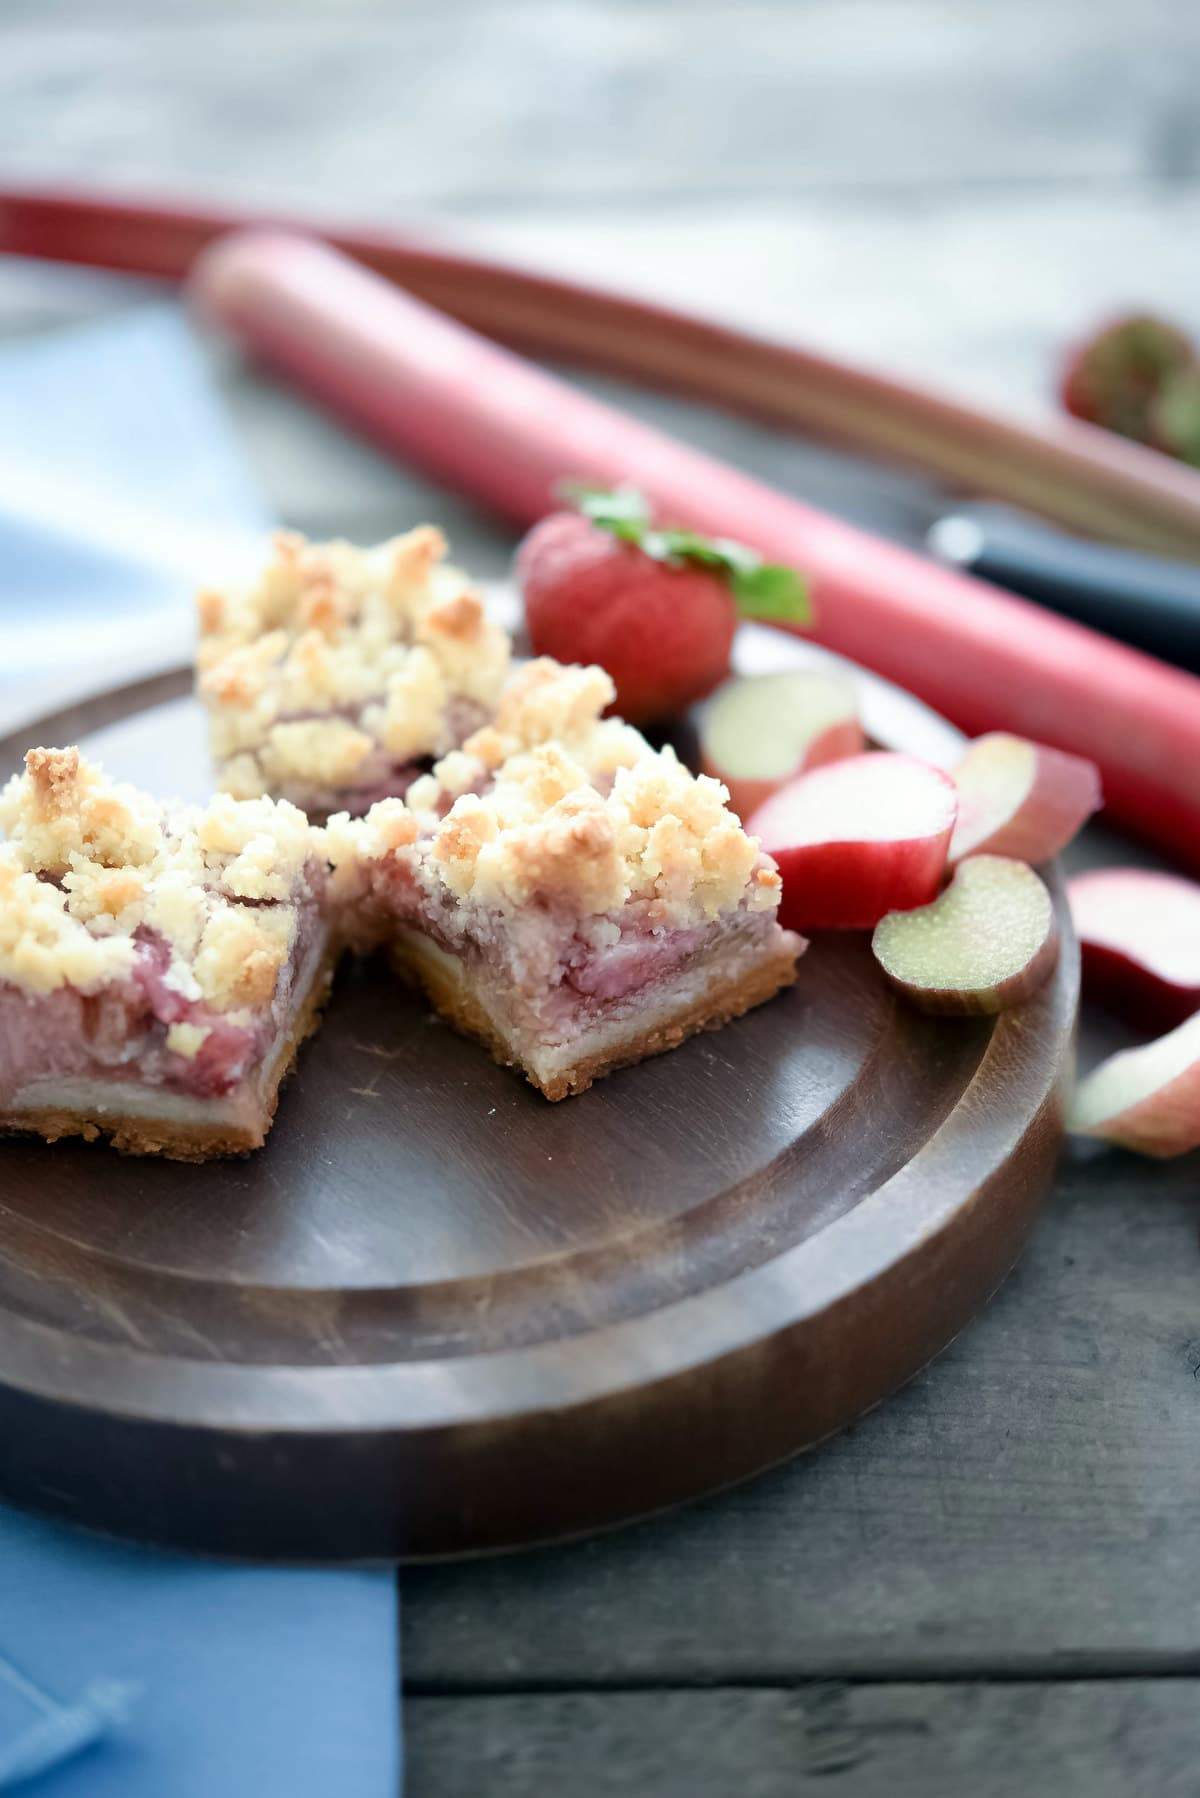 Guest Post Joshua From Slimpalate: Guest Post:Strawberry Rhubarb Bars